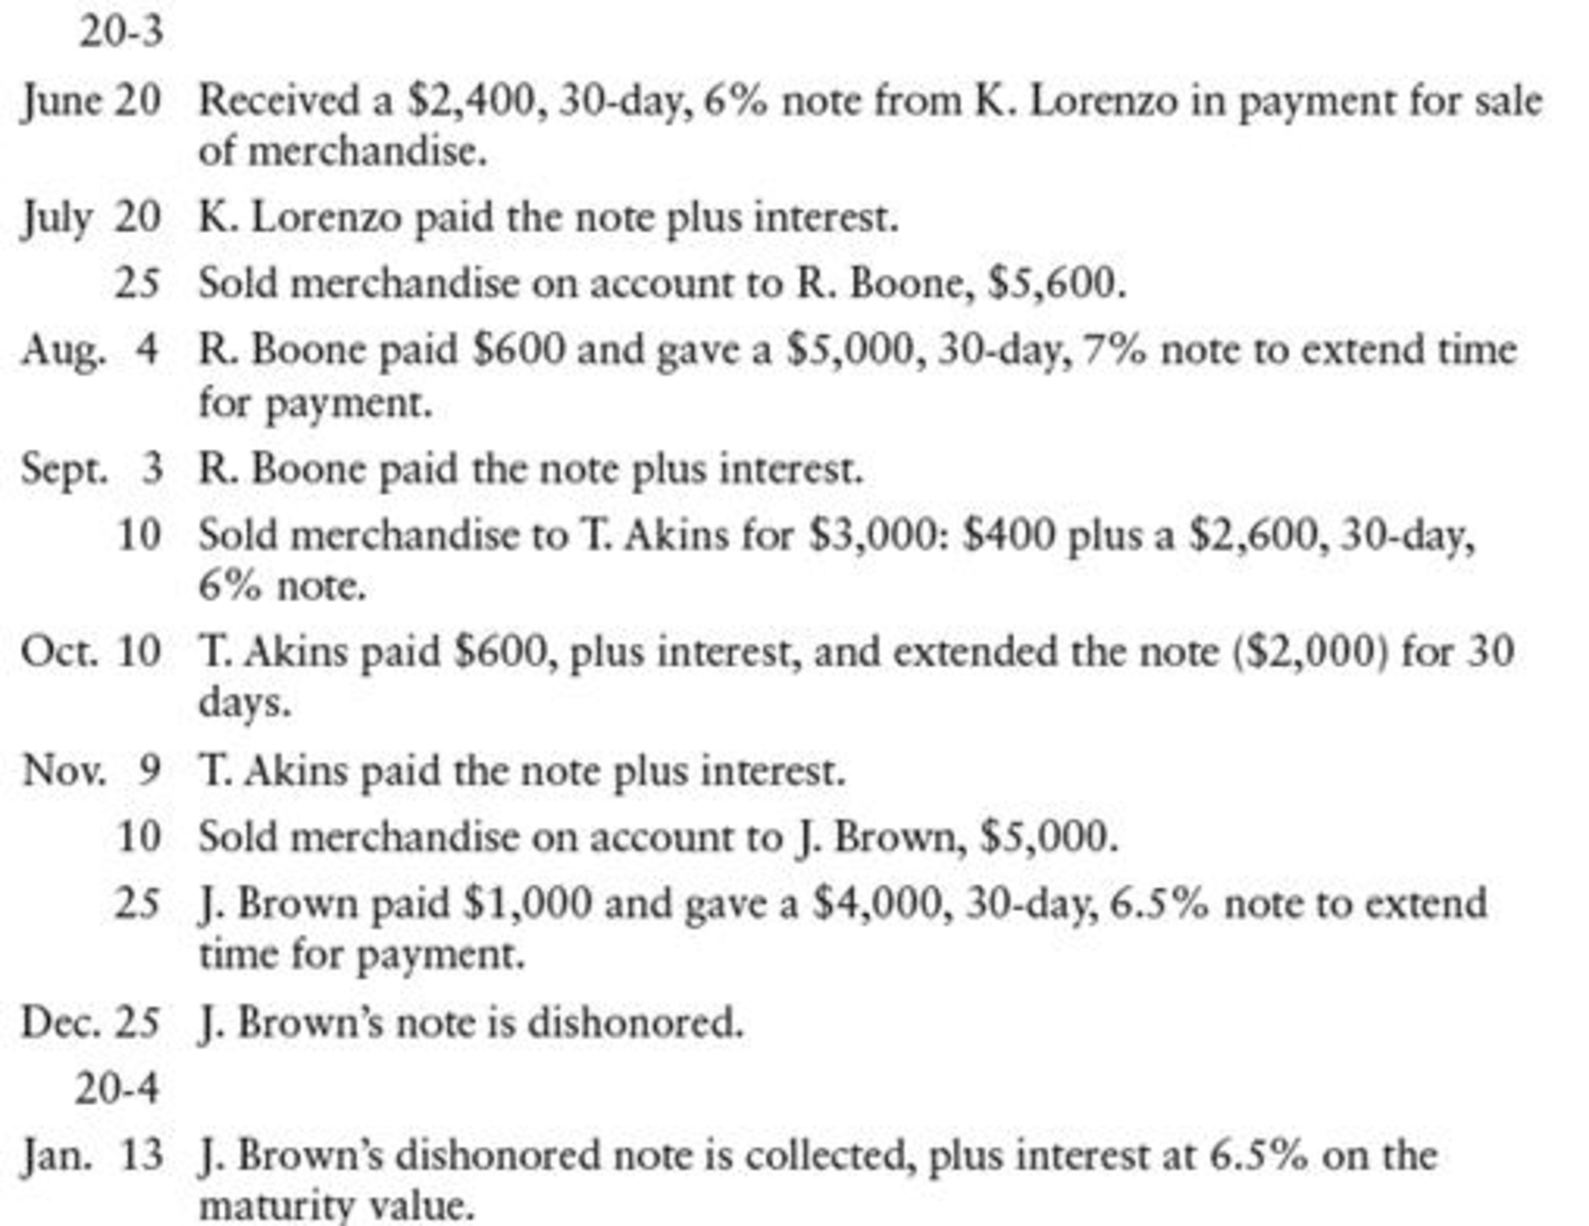 Chapter 17, Problem 10SPB, NOTES RECEIVABLE ENTRIES M. L. DiMaurizio had the following notes receivable transactions: REQUIRED